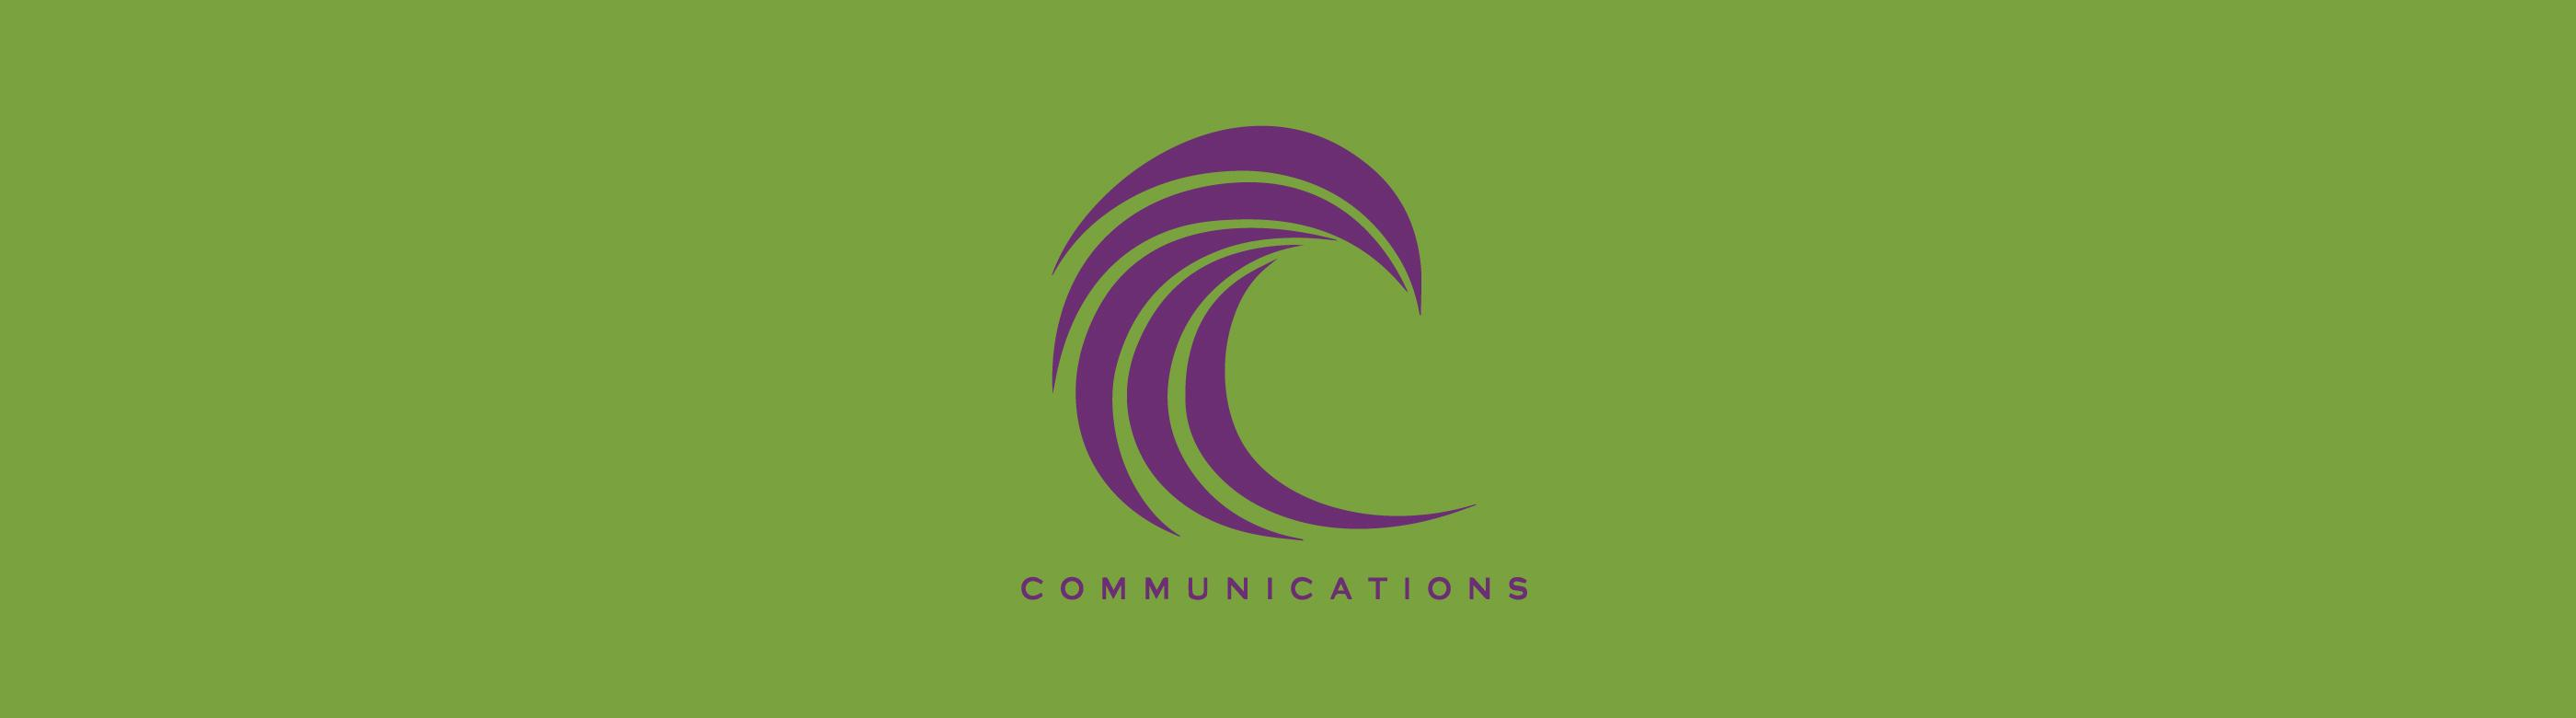 Communications approved for '16-'17 school year, re-evaluation planned